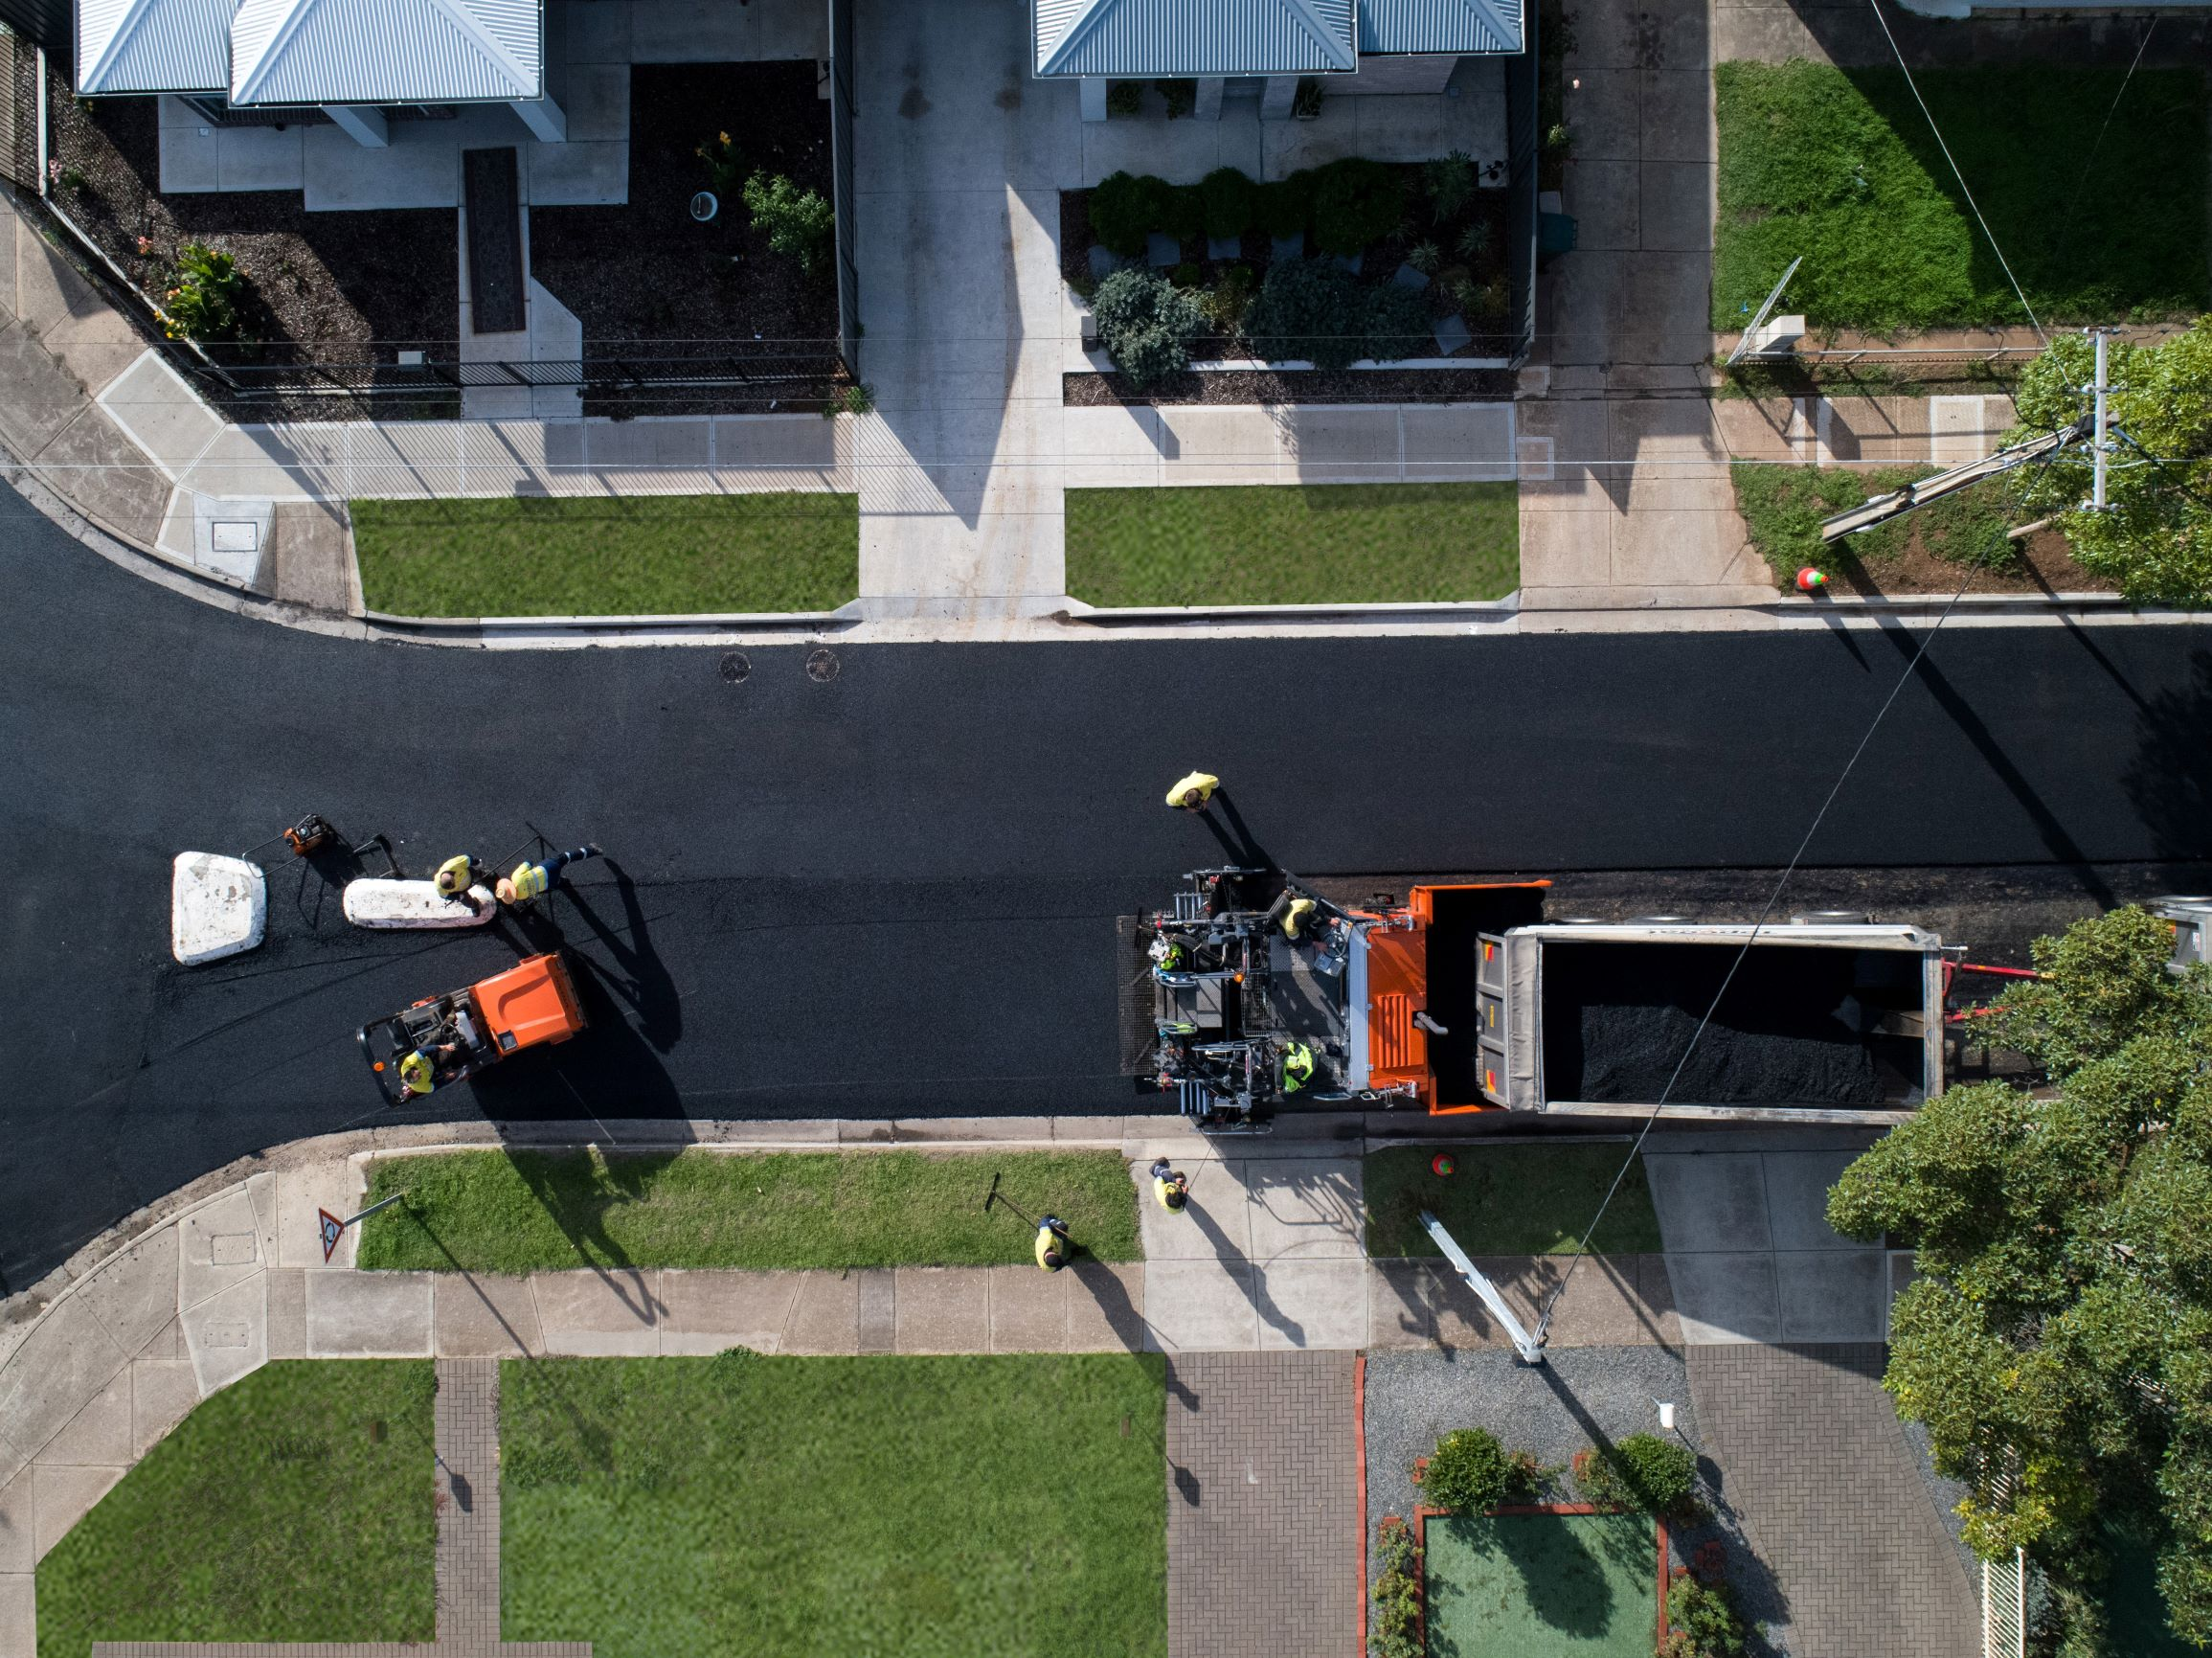 Asphalt Production on the street